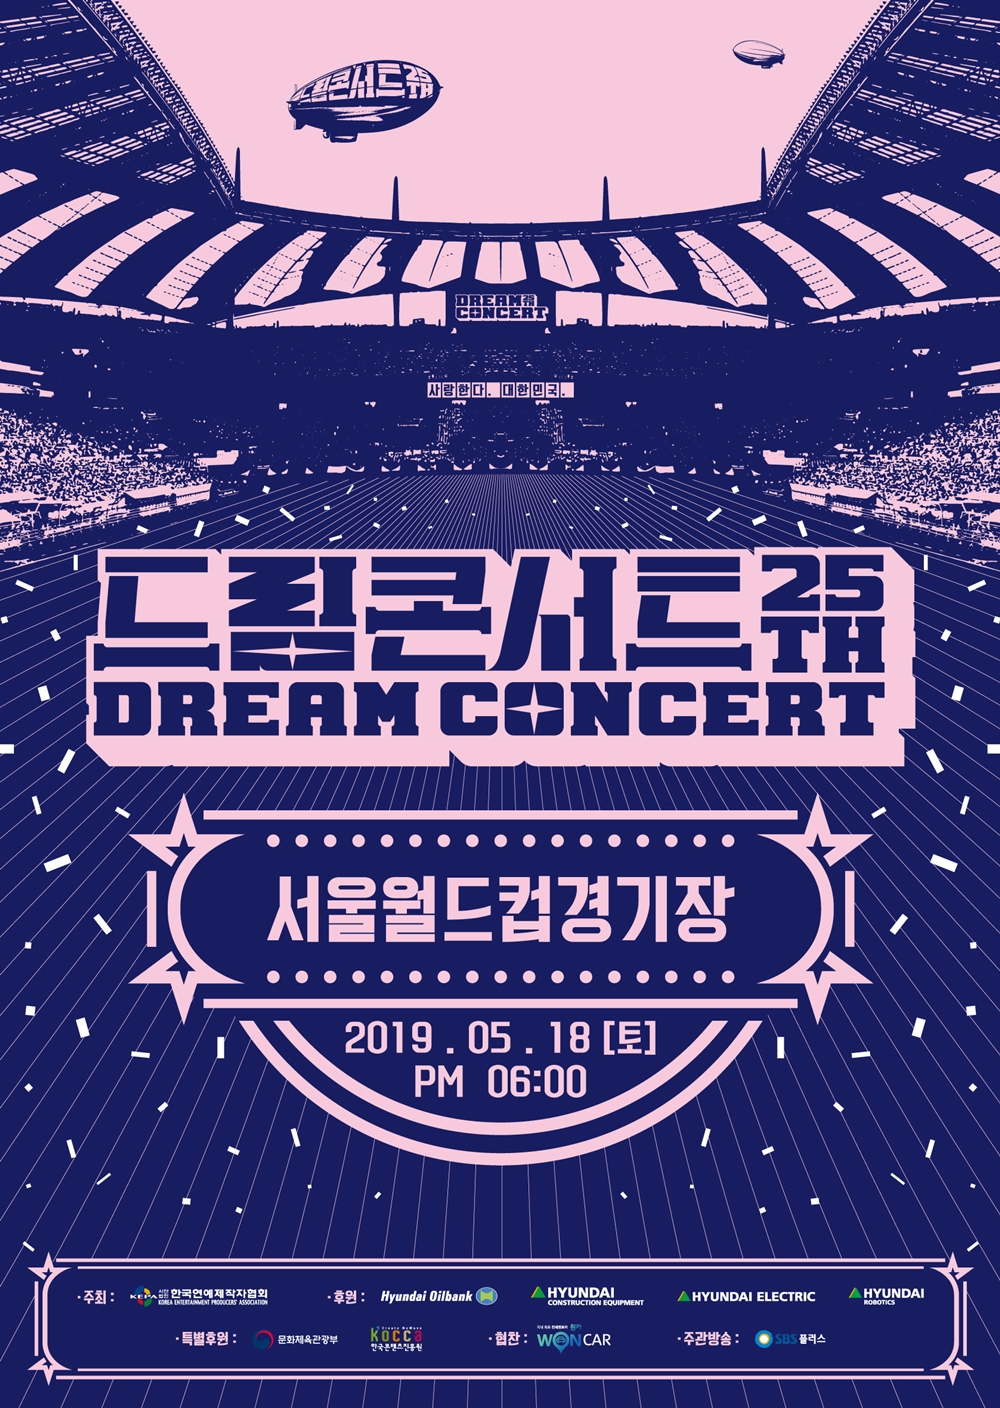 dream concert, dream concert lineup, dream concert date, dream concert venue, dream concert 2019, dream concert ticket, dream concert time,